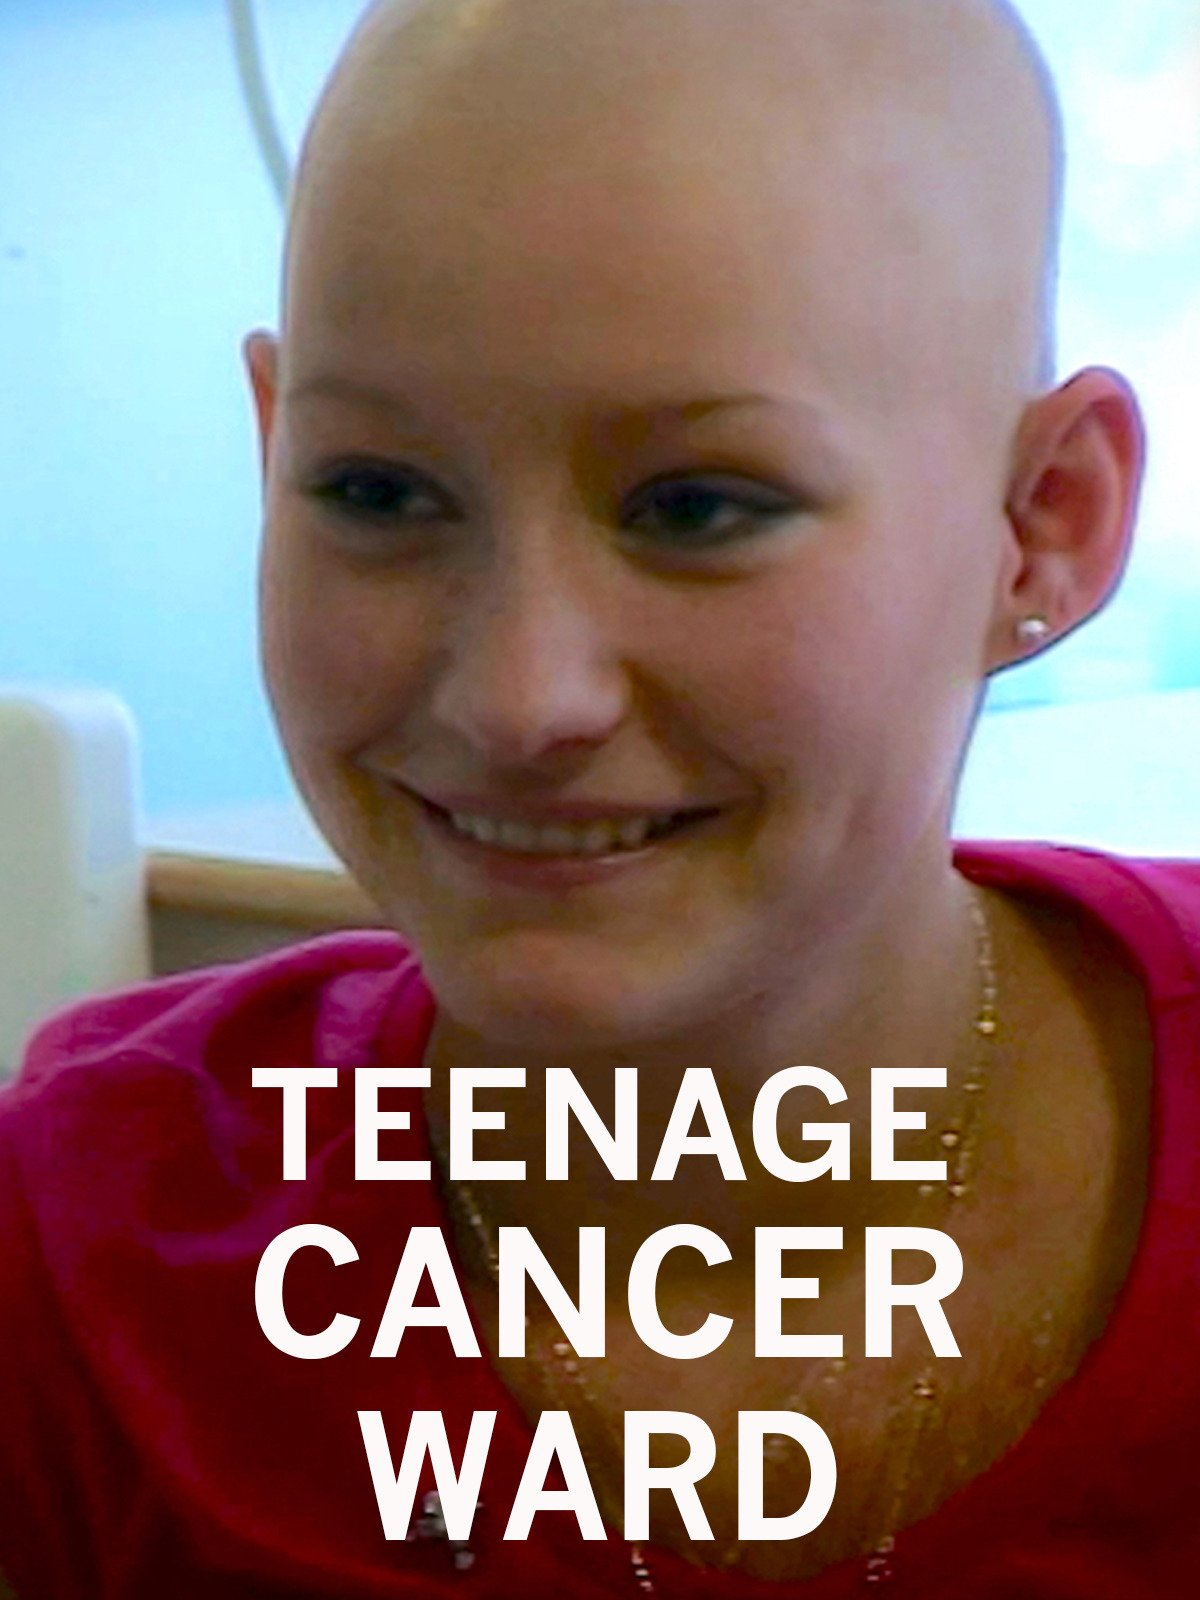 Teenage Cancer Ward